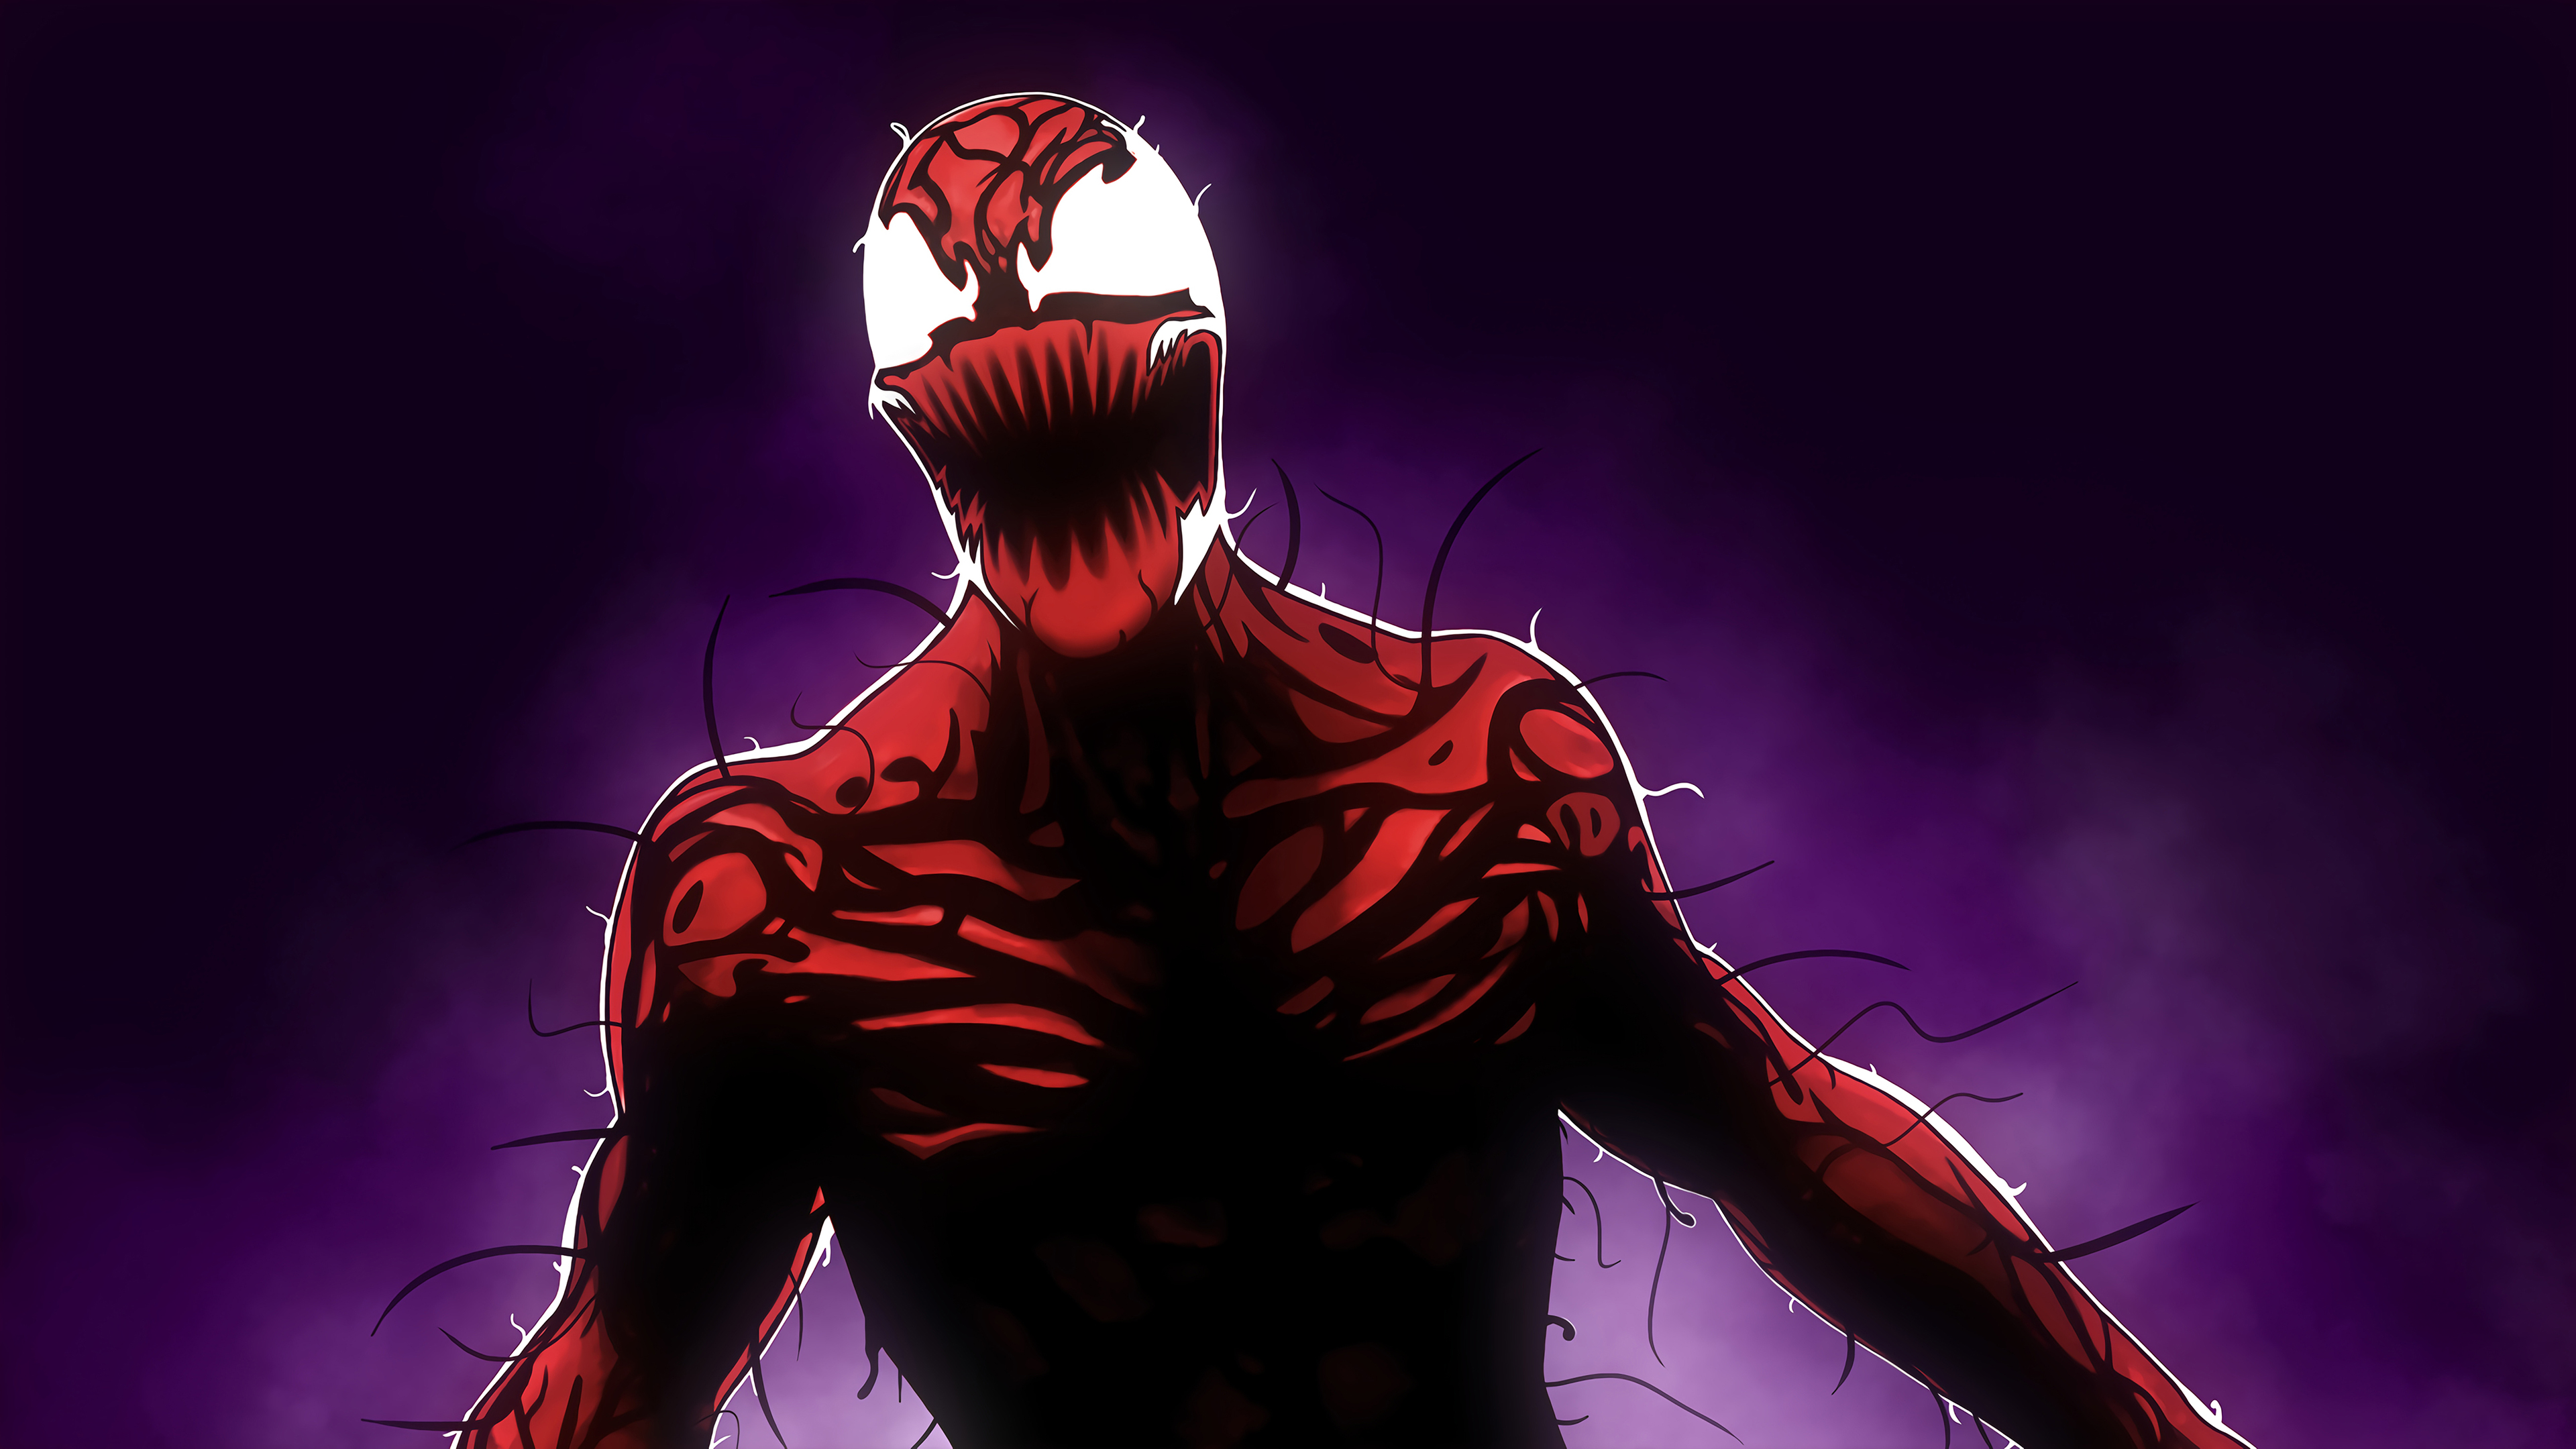 carnage from marvels spider man series 1536521795 - Carnage From Marvels Spider Man Series - marvel wallpapers, hd-wallpapers, deviantart wallpapers, carnage wallpapers, artwork wallpapers, artist wallpapers, 4k-wallpapers